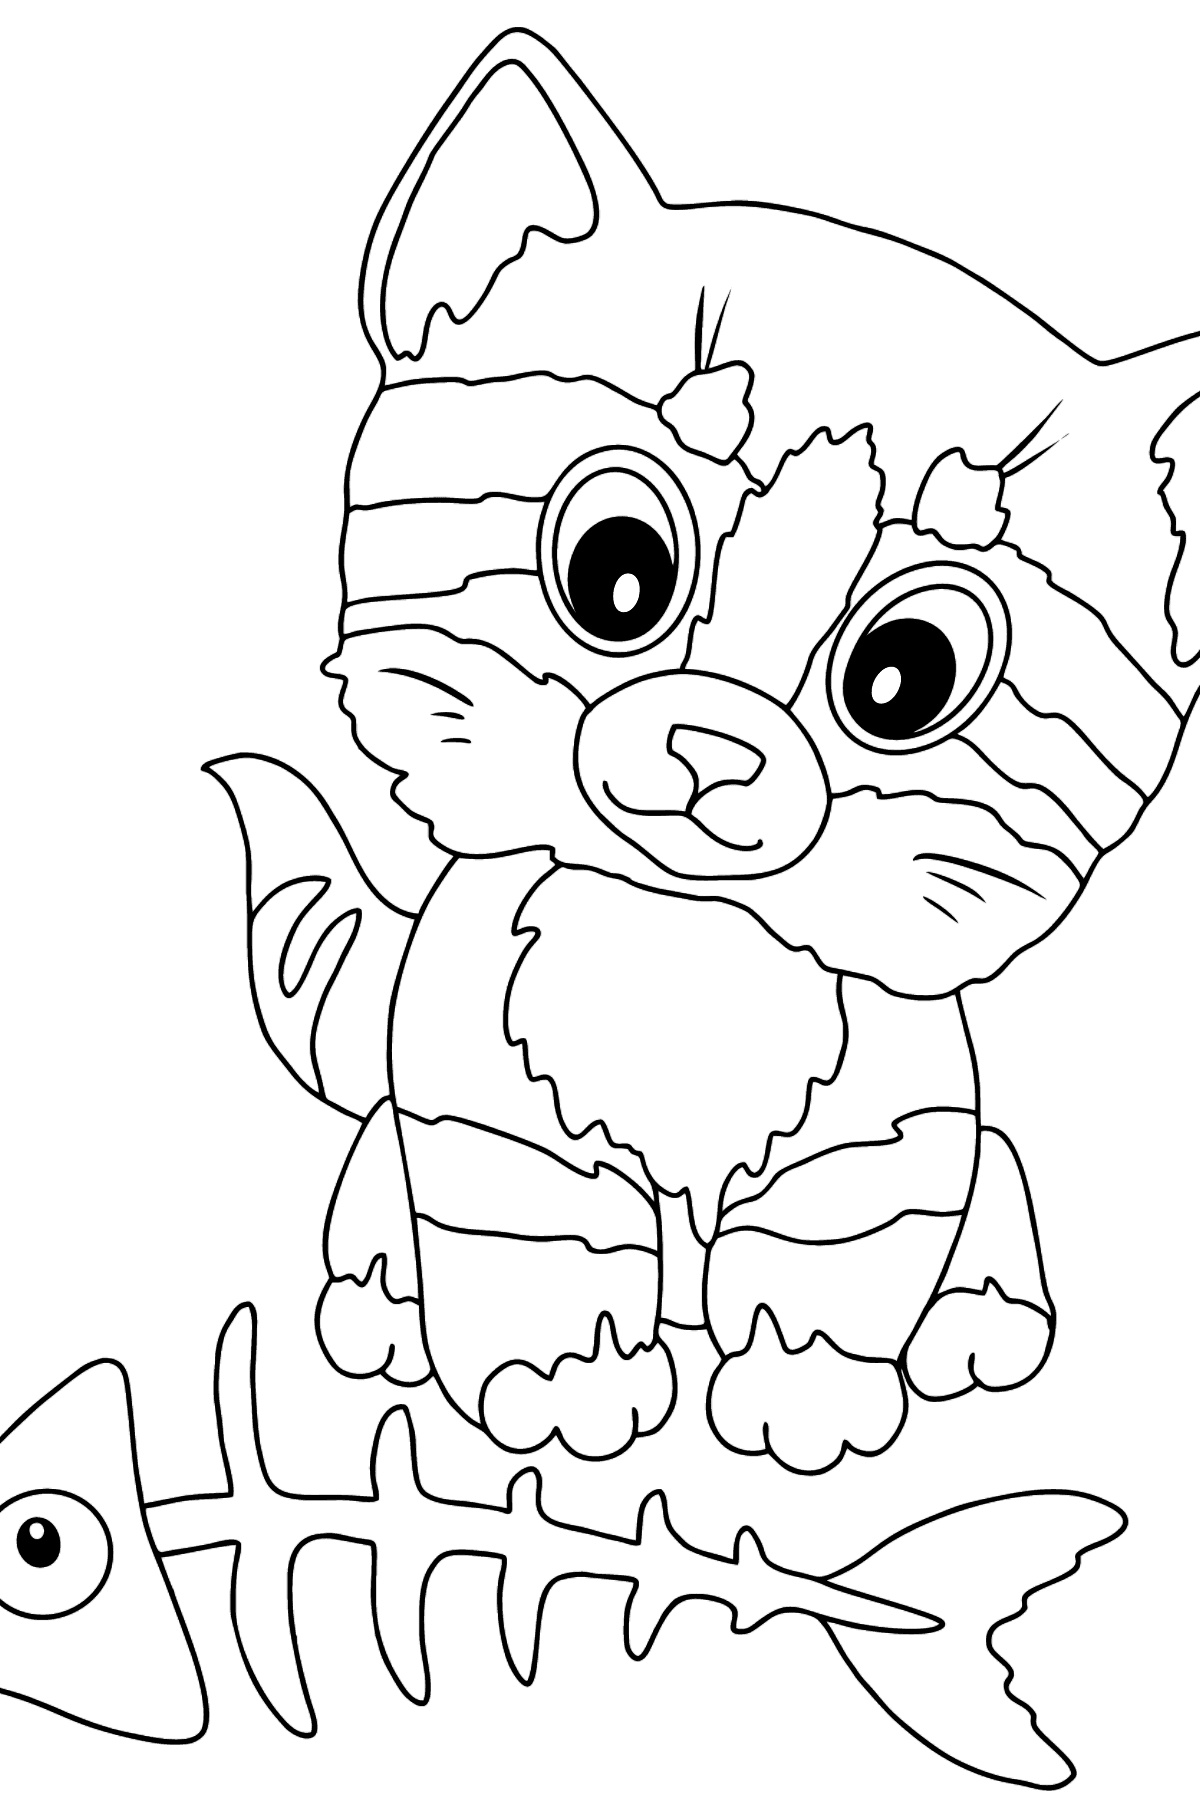 Coloring Page - A Kitten is Staring at a Bone with Interest - Coloring Pages for Kids